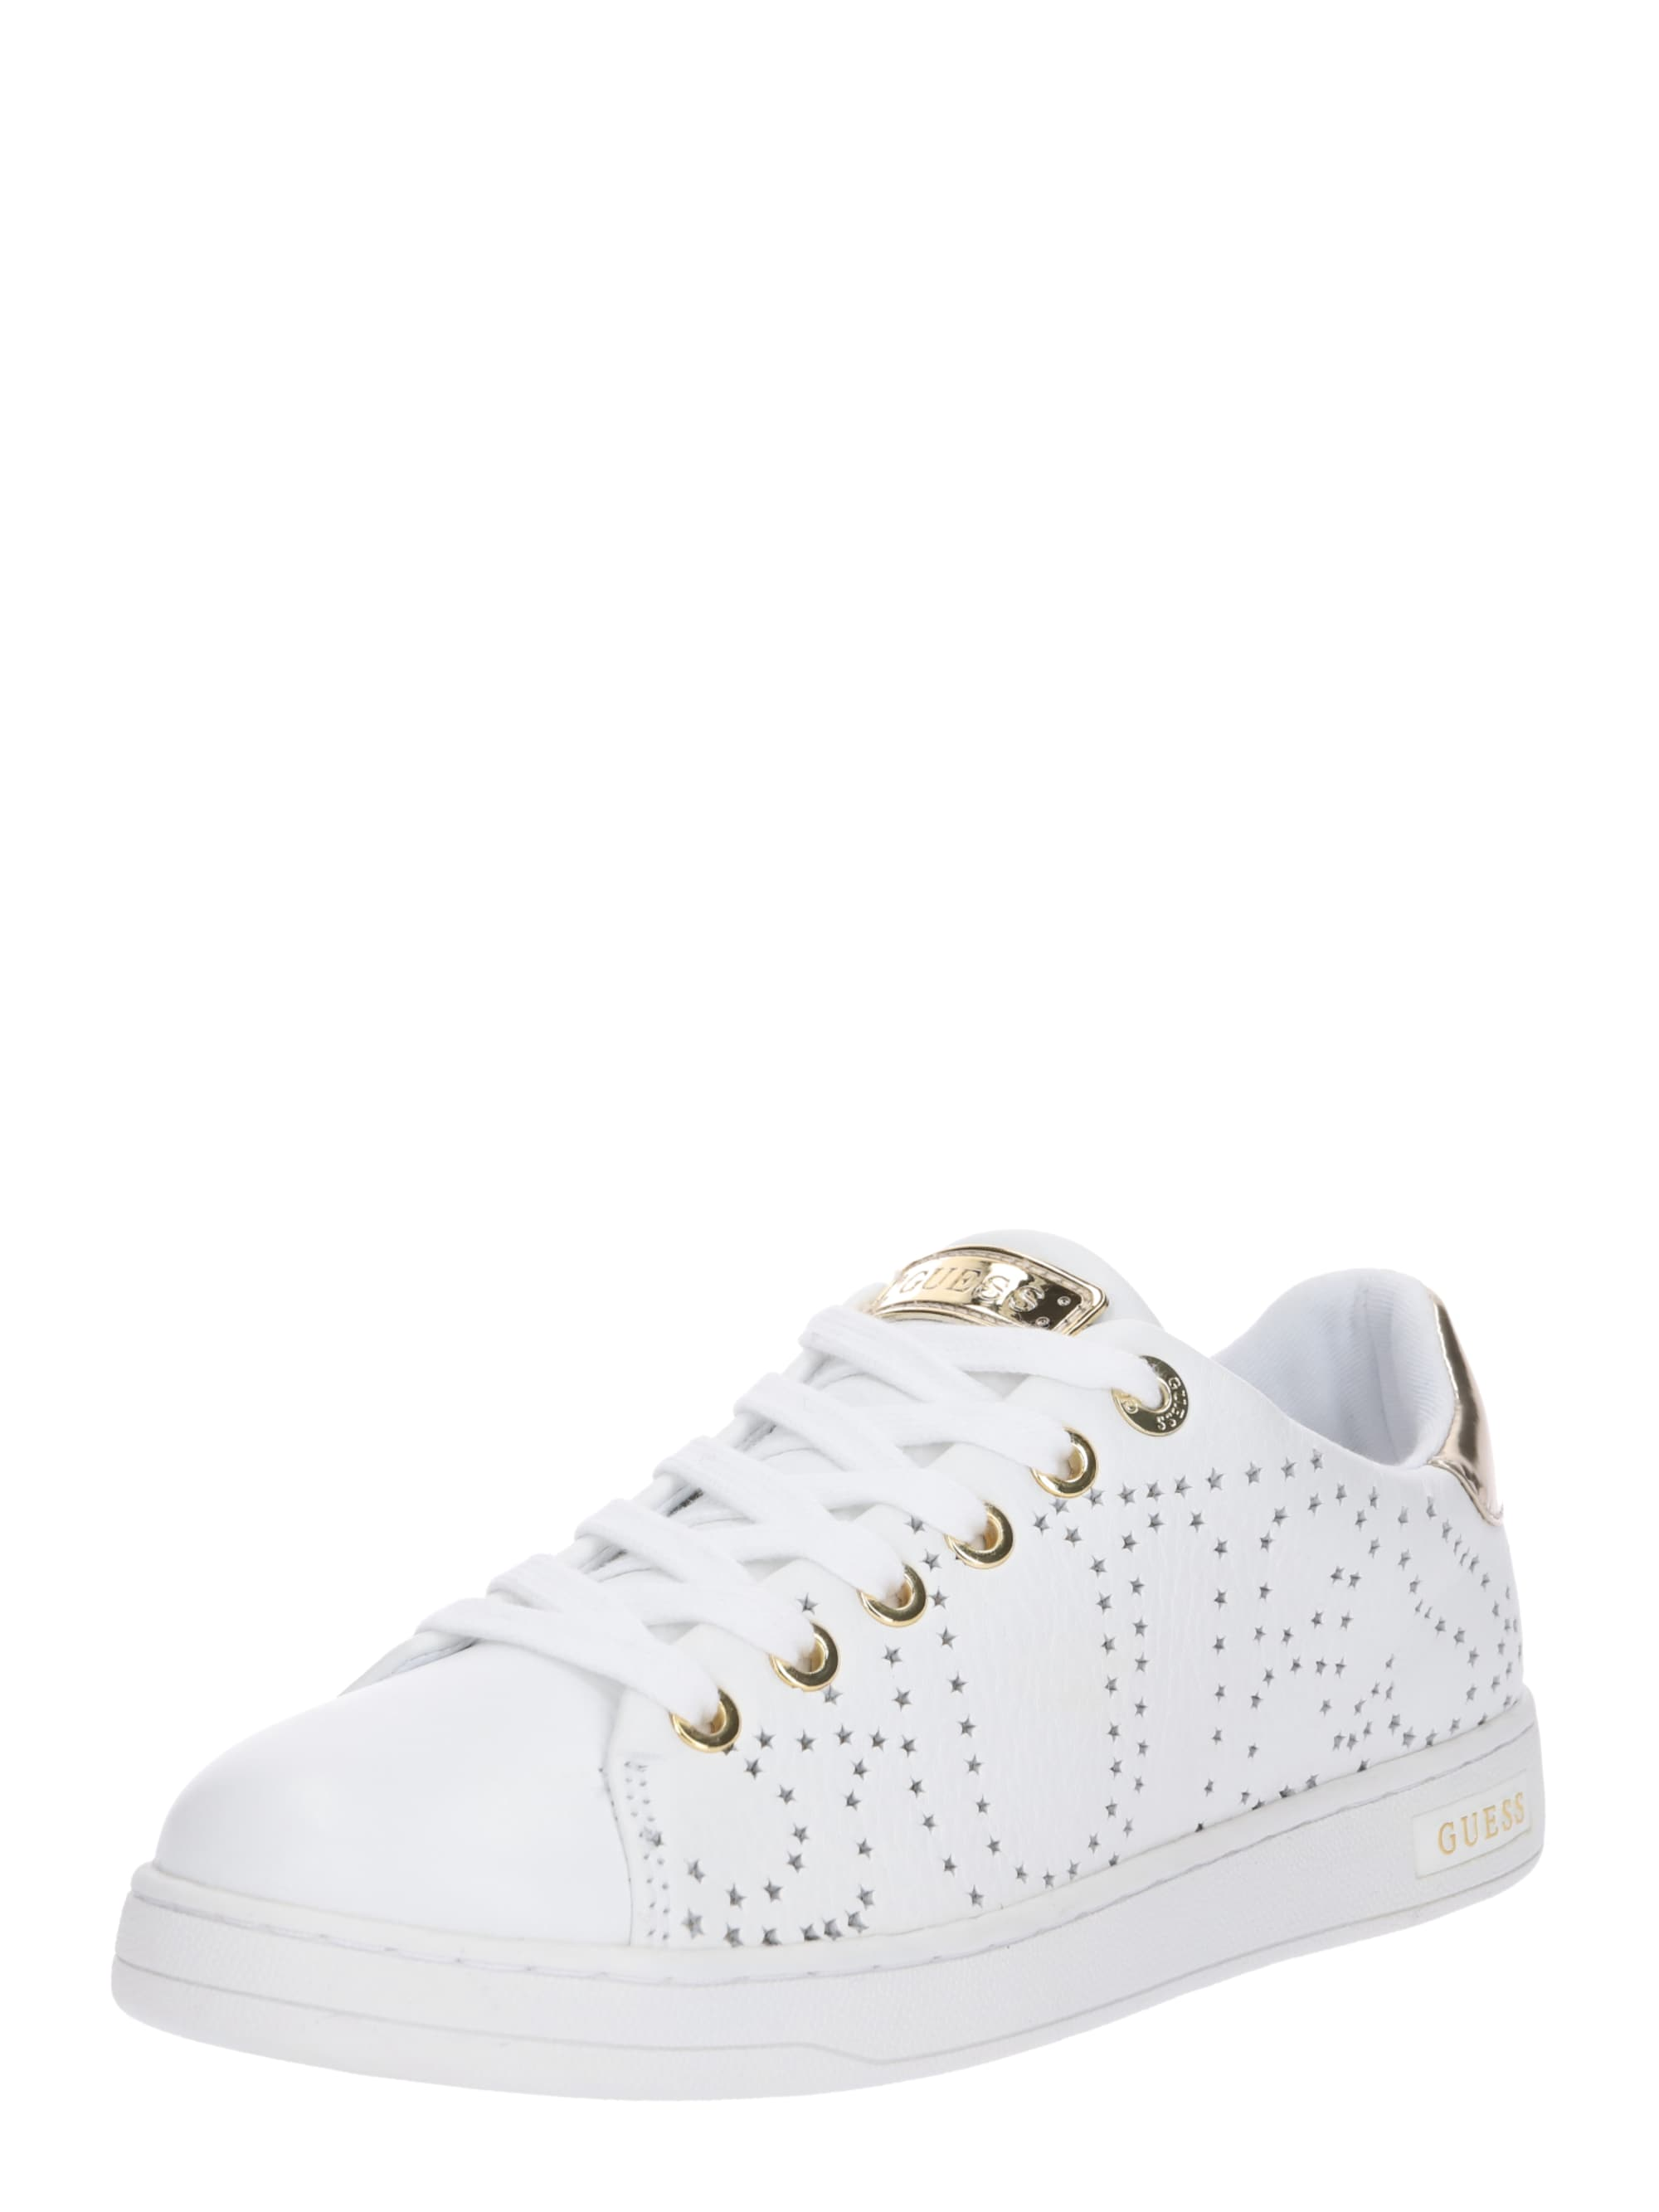 Image of Damen - Sneaker ´CARTERR2´